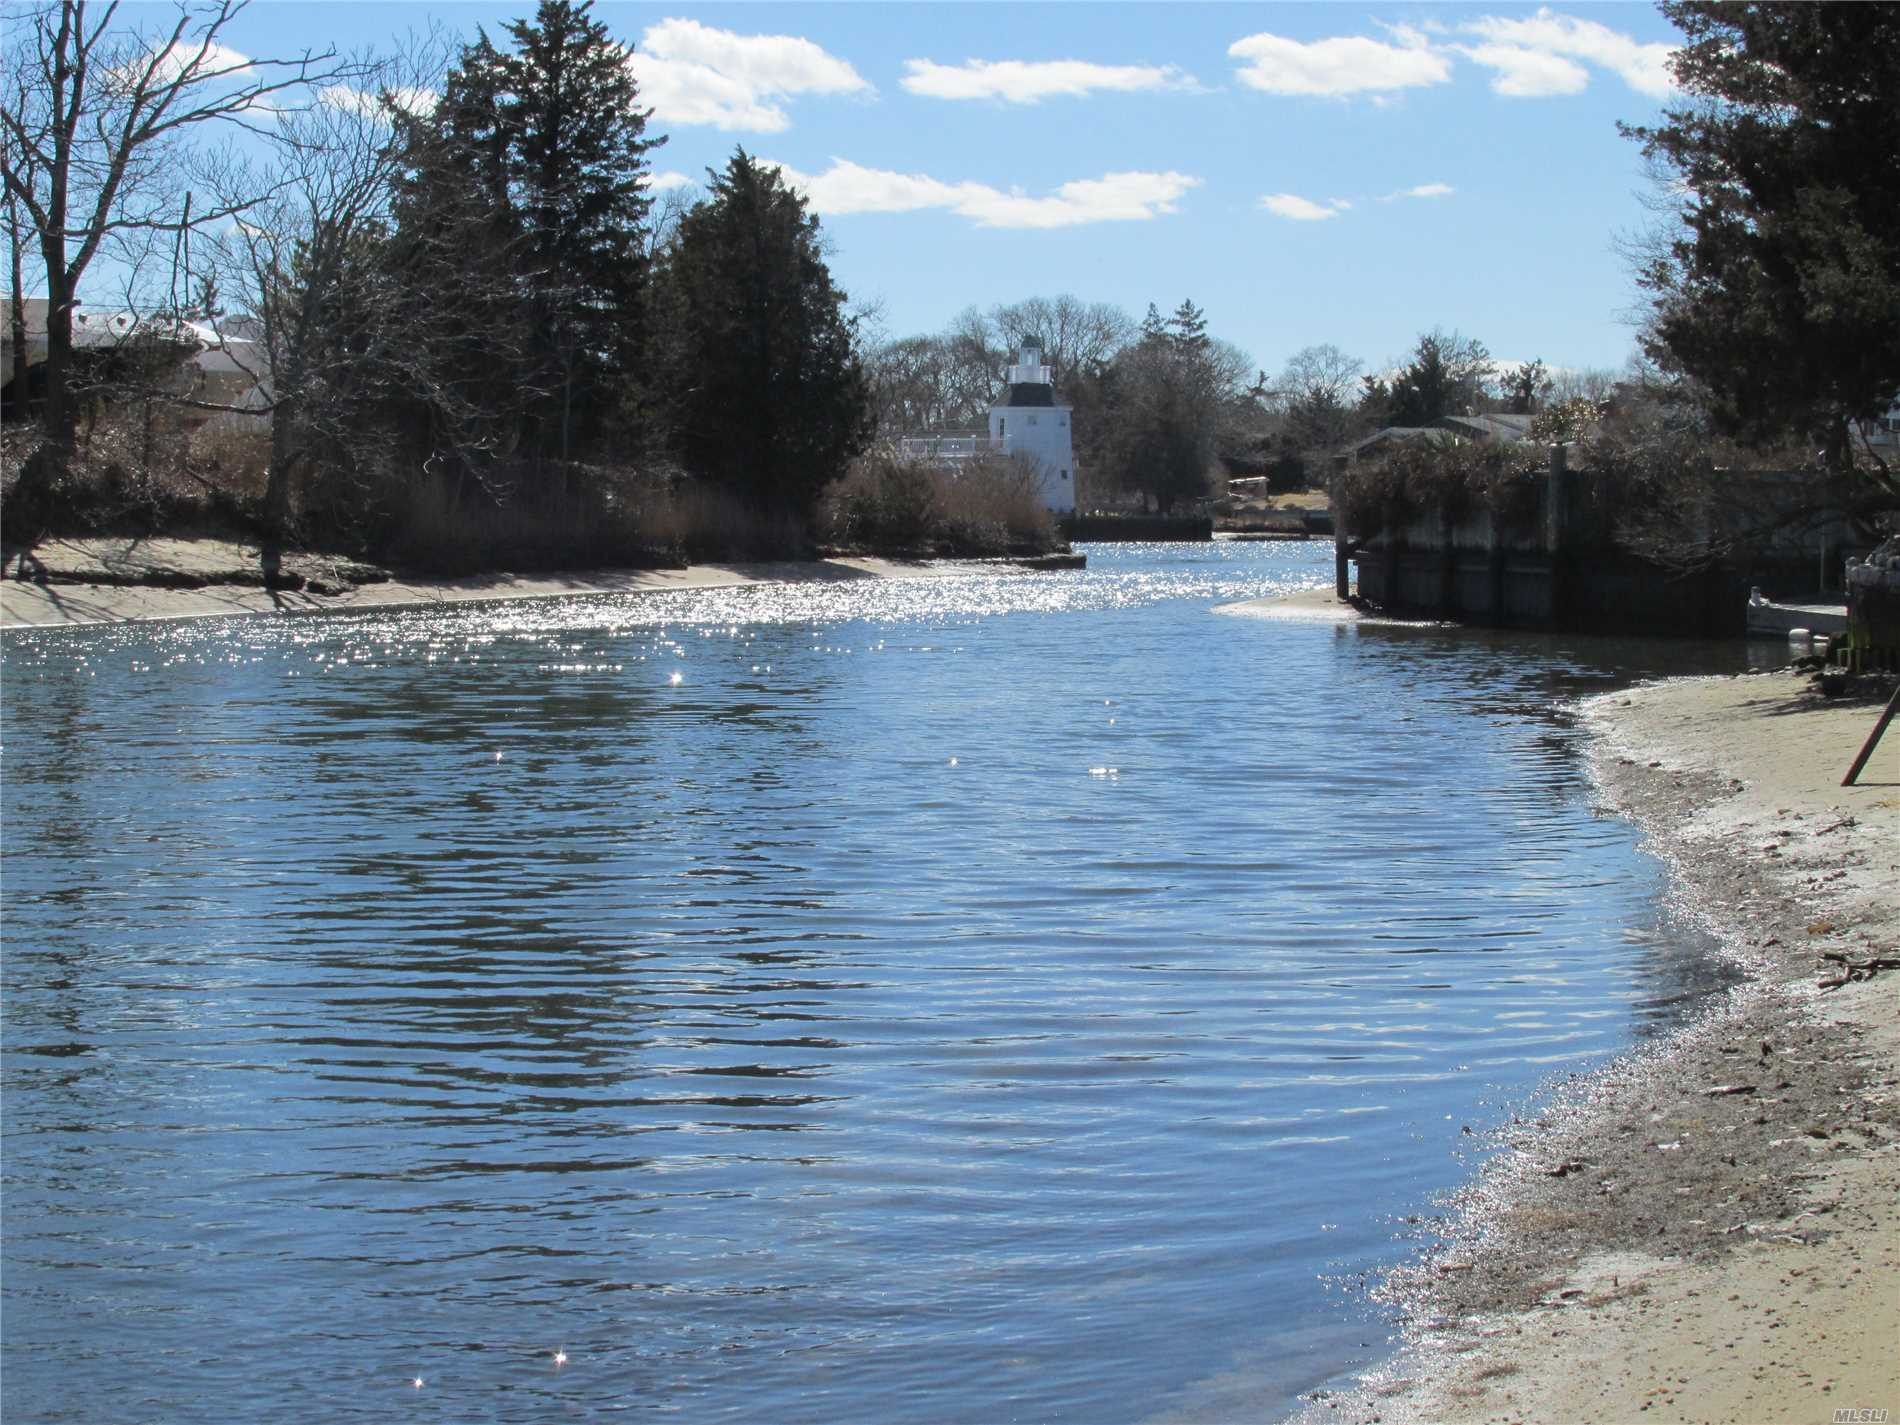 LEAST EXPENSIVE DEEP WATER LOT ON MLS-Sheltered - On James Creek - .39 Acre Lot - 80' Frontage - Open Access To Peconic Bay - Near Beaches - Attached Survey From 2007 - Please Do Not Walk Property Without Listing Broker